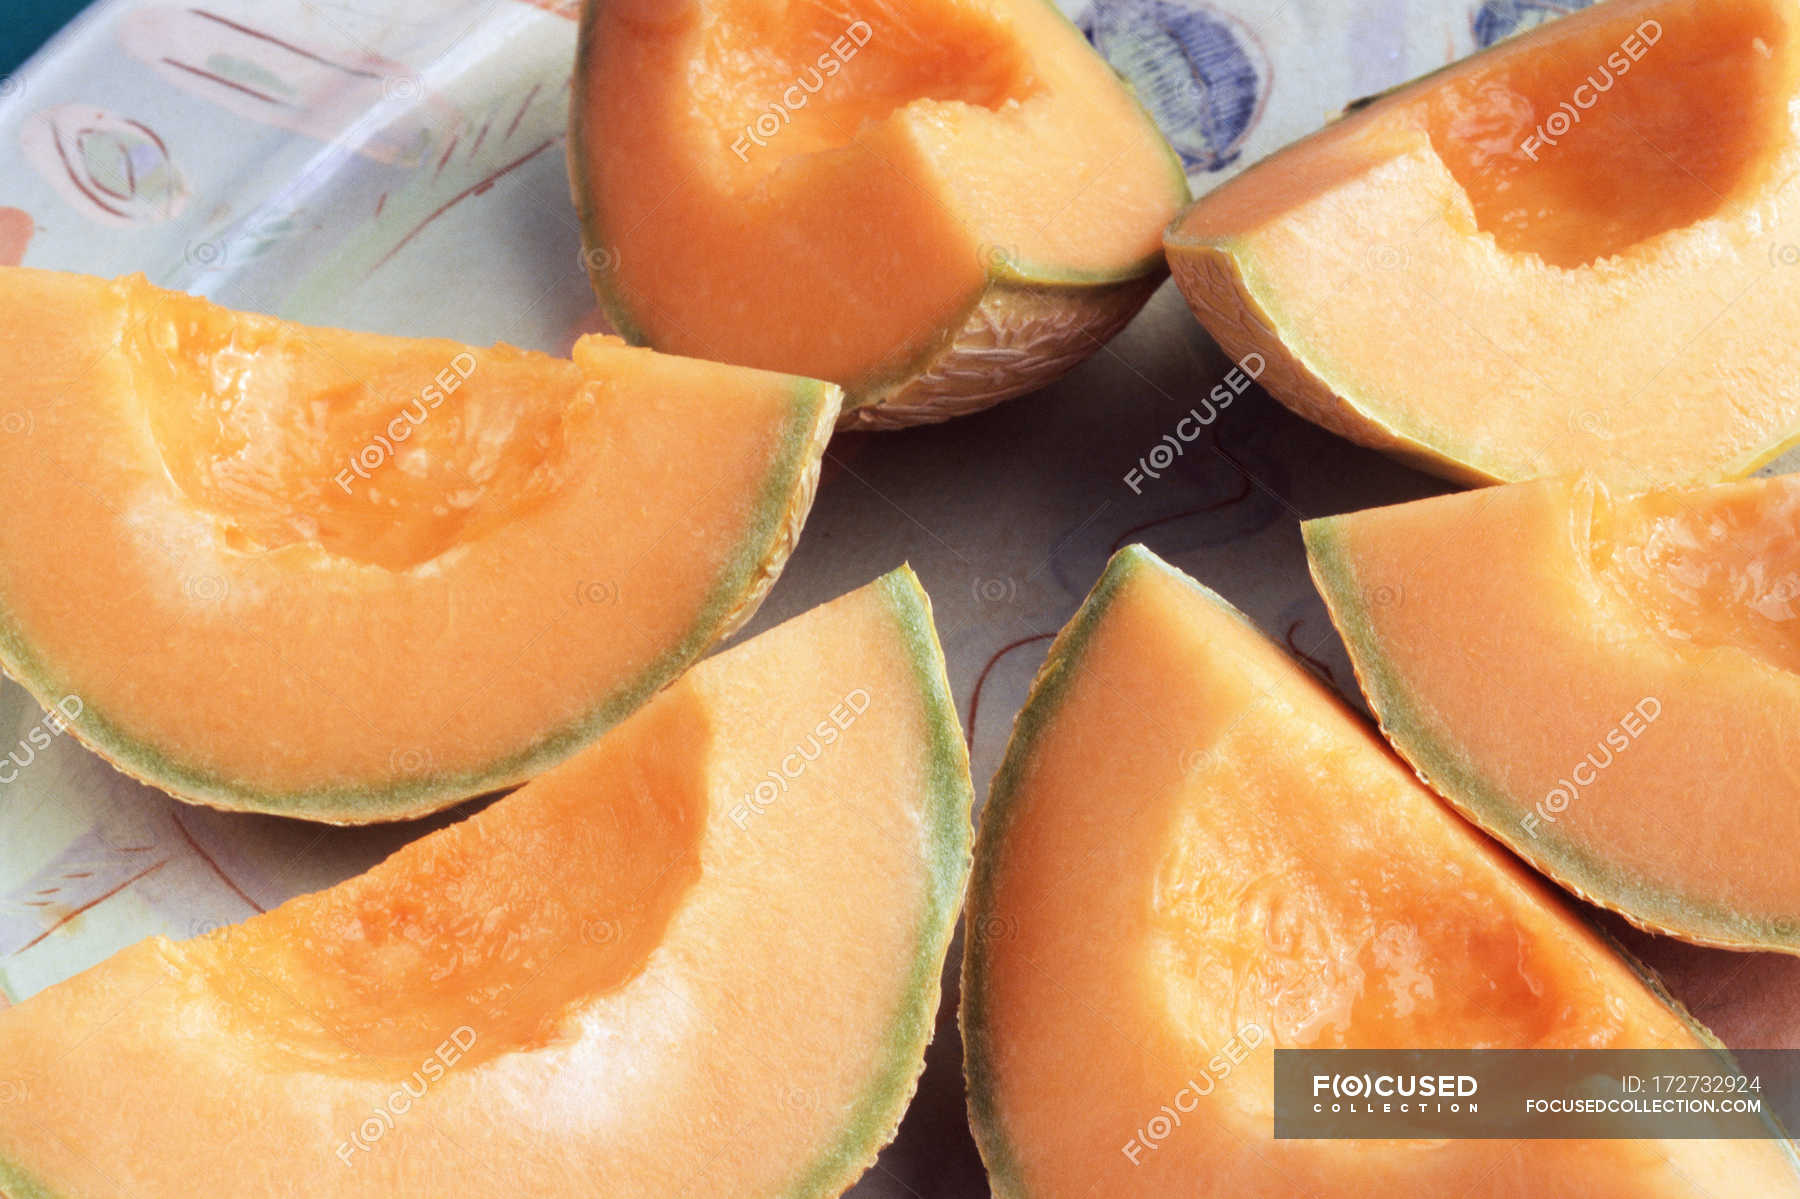 Juicy Cantaloupe Melon Slices On Plate Ripe Sweet Flavor Stock Photo 172732924 Cantaloupe has been linked to illnesses in several instances in the past. https focusedcollection com 172732924 stock photo juicy cantaloupe melon slices plate html